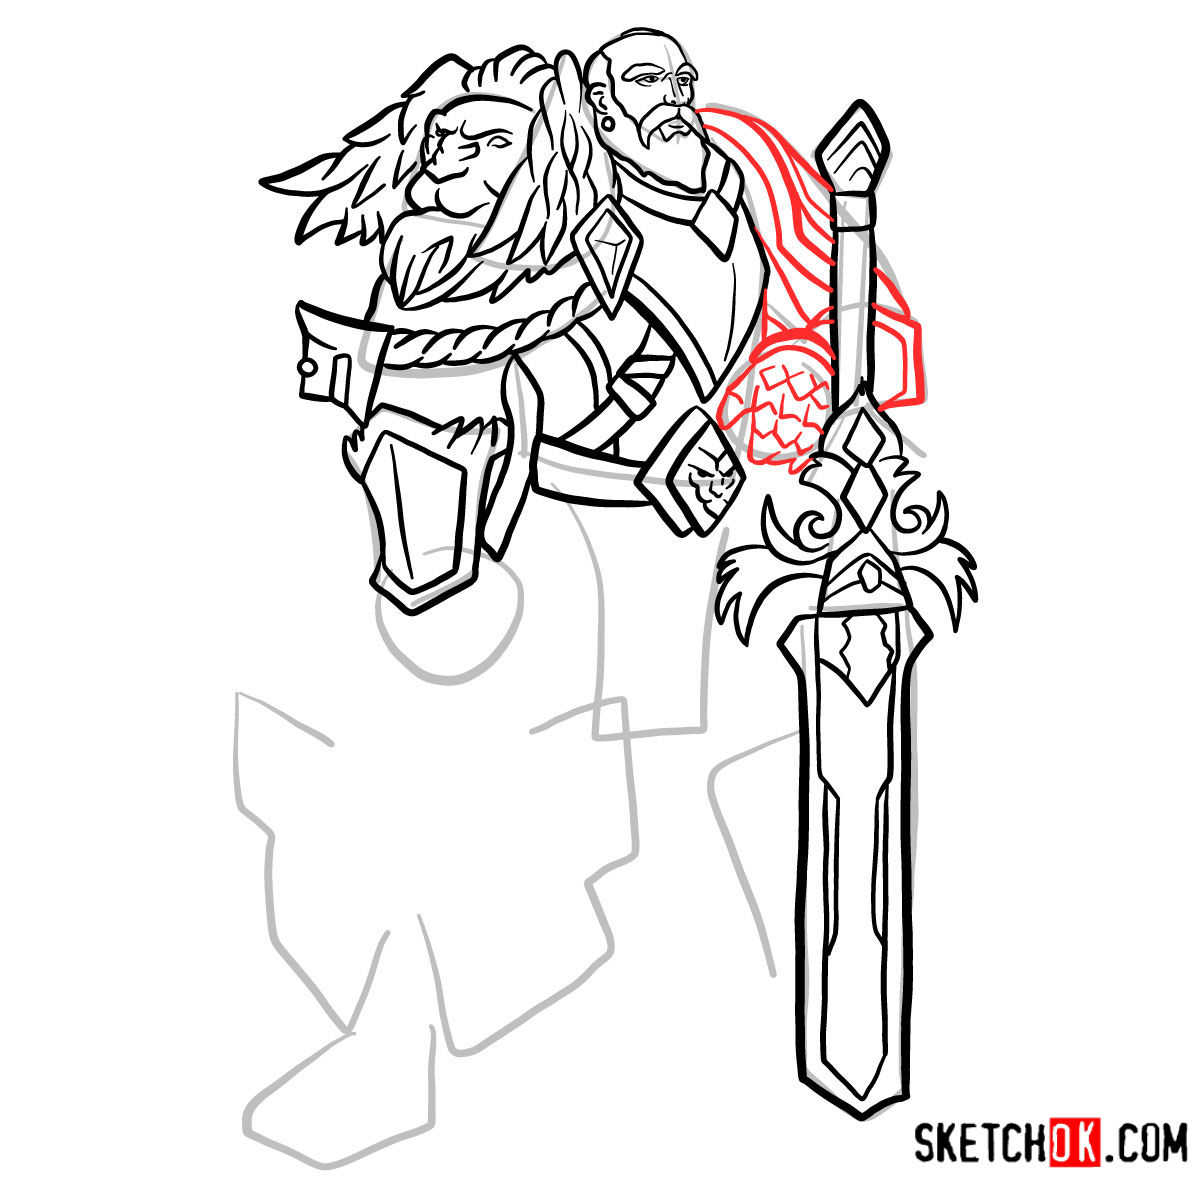 How to draw Lord Anduin Lothar | World of Warcraft - step 12